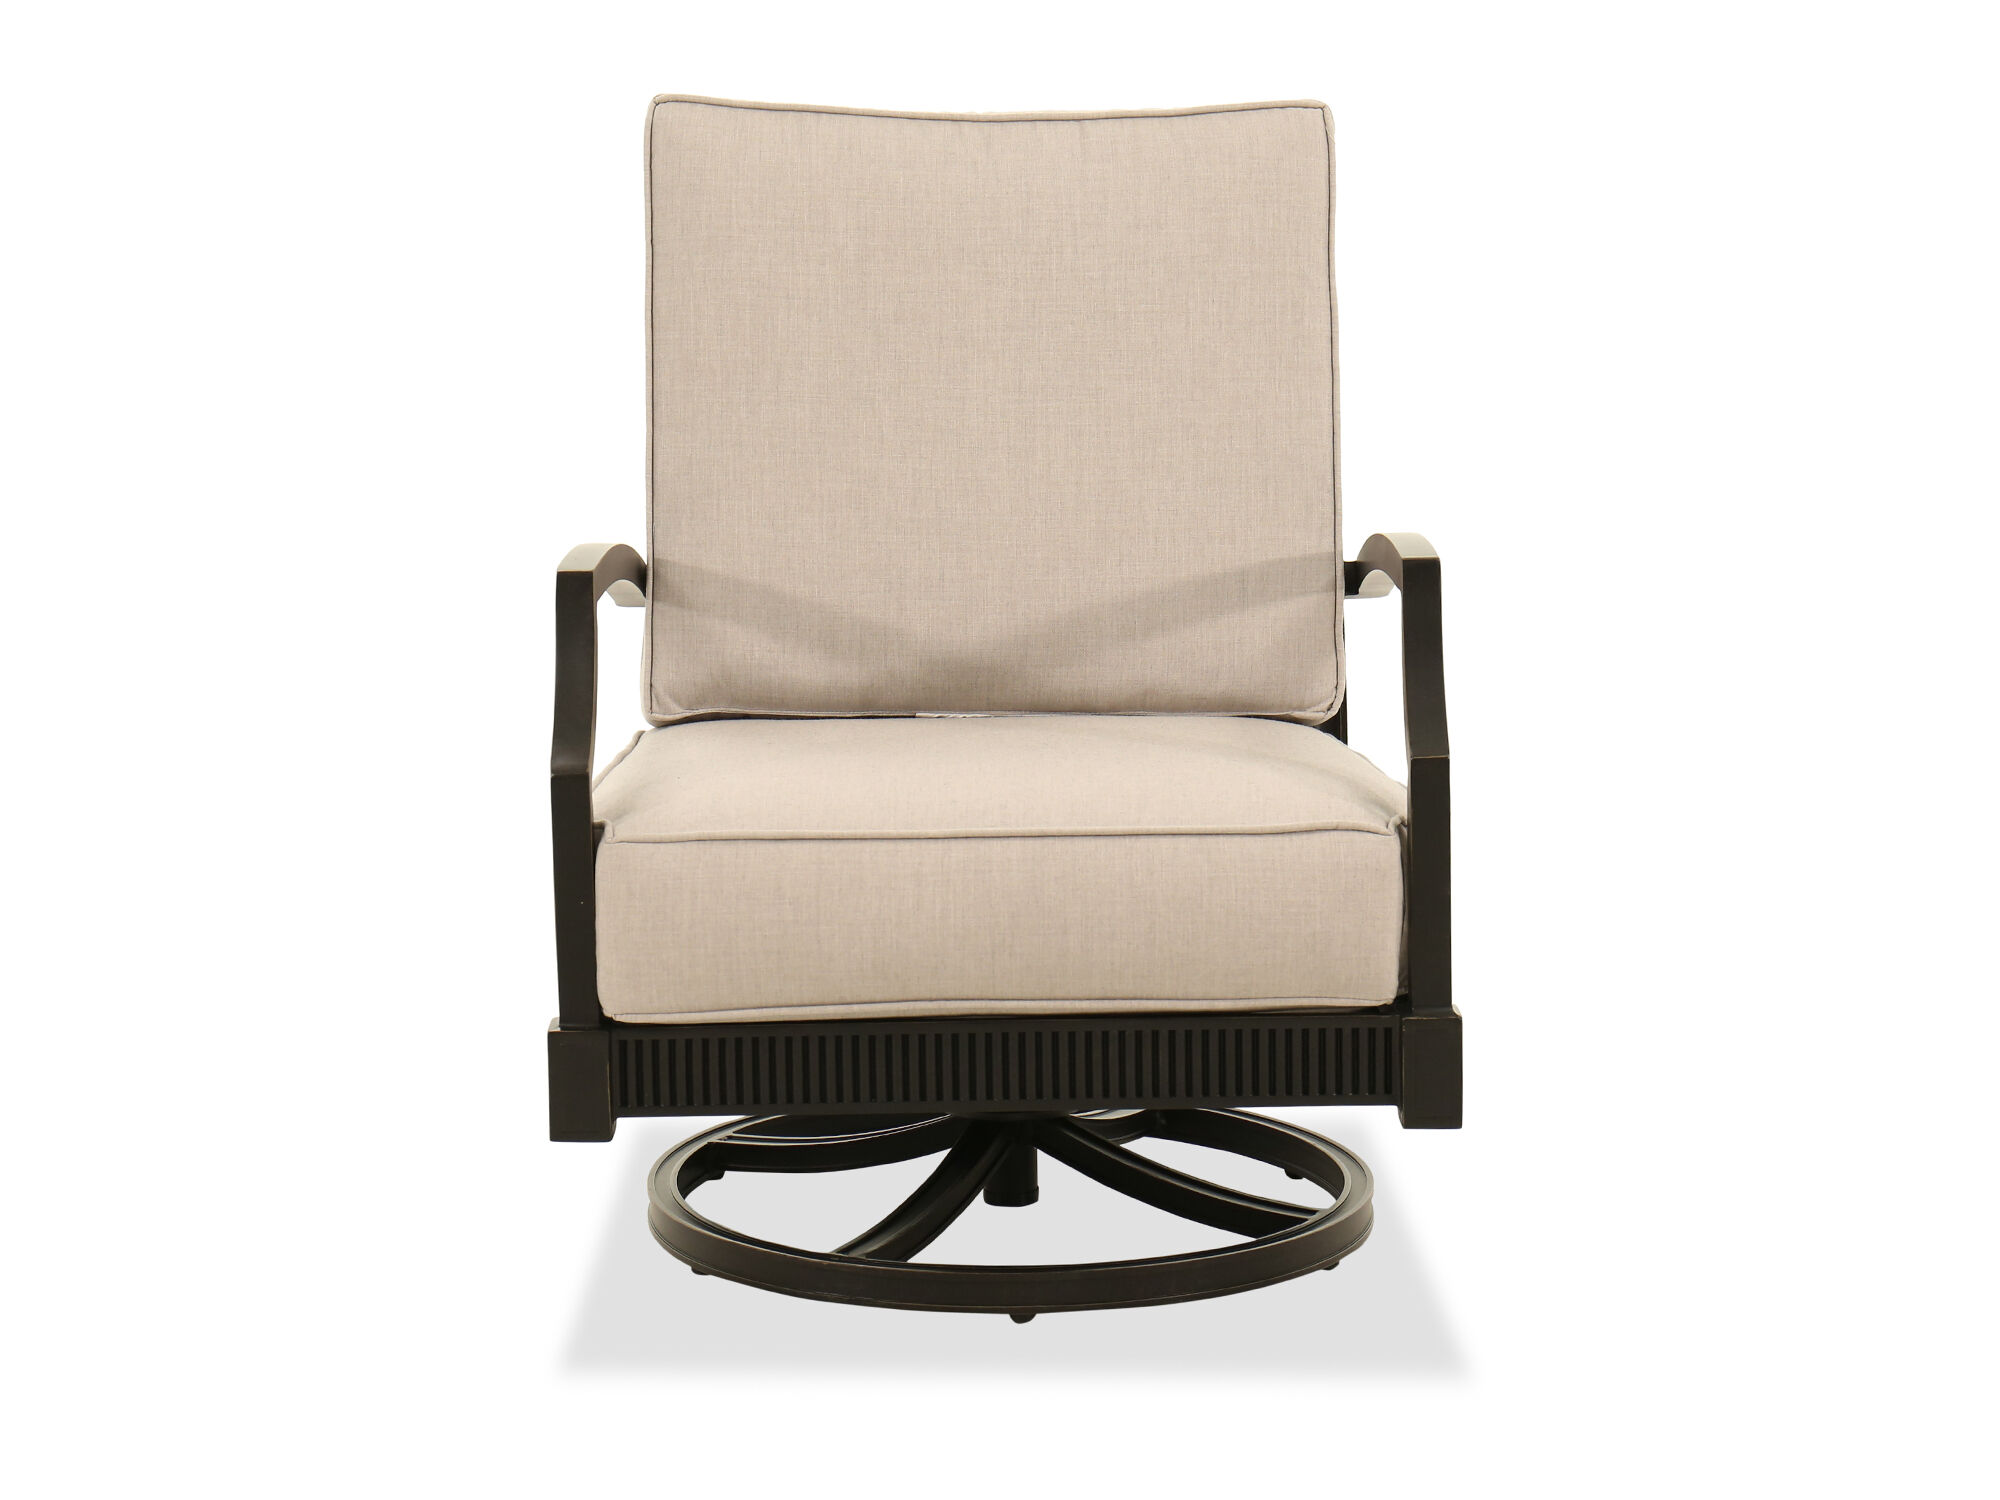 Attrayant Images Rocking Aluminum Club Chair In Gray Rocking Aluminum Club Chair In  Gray